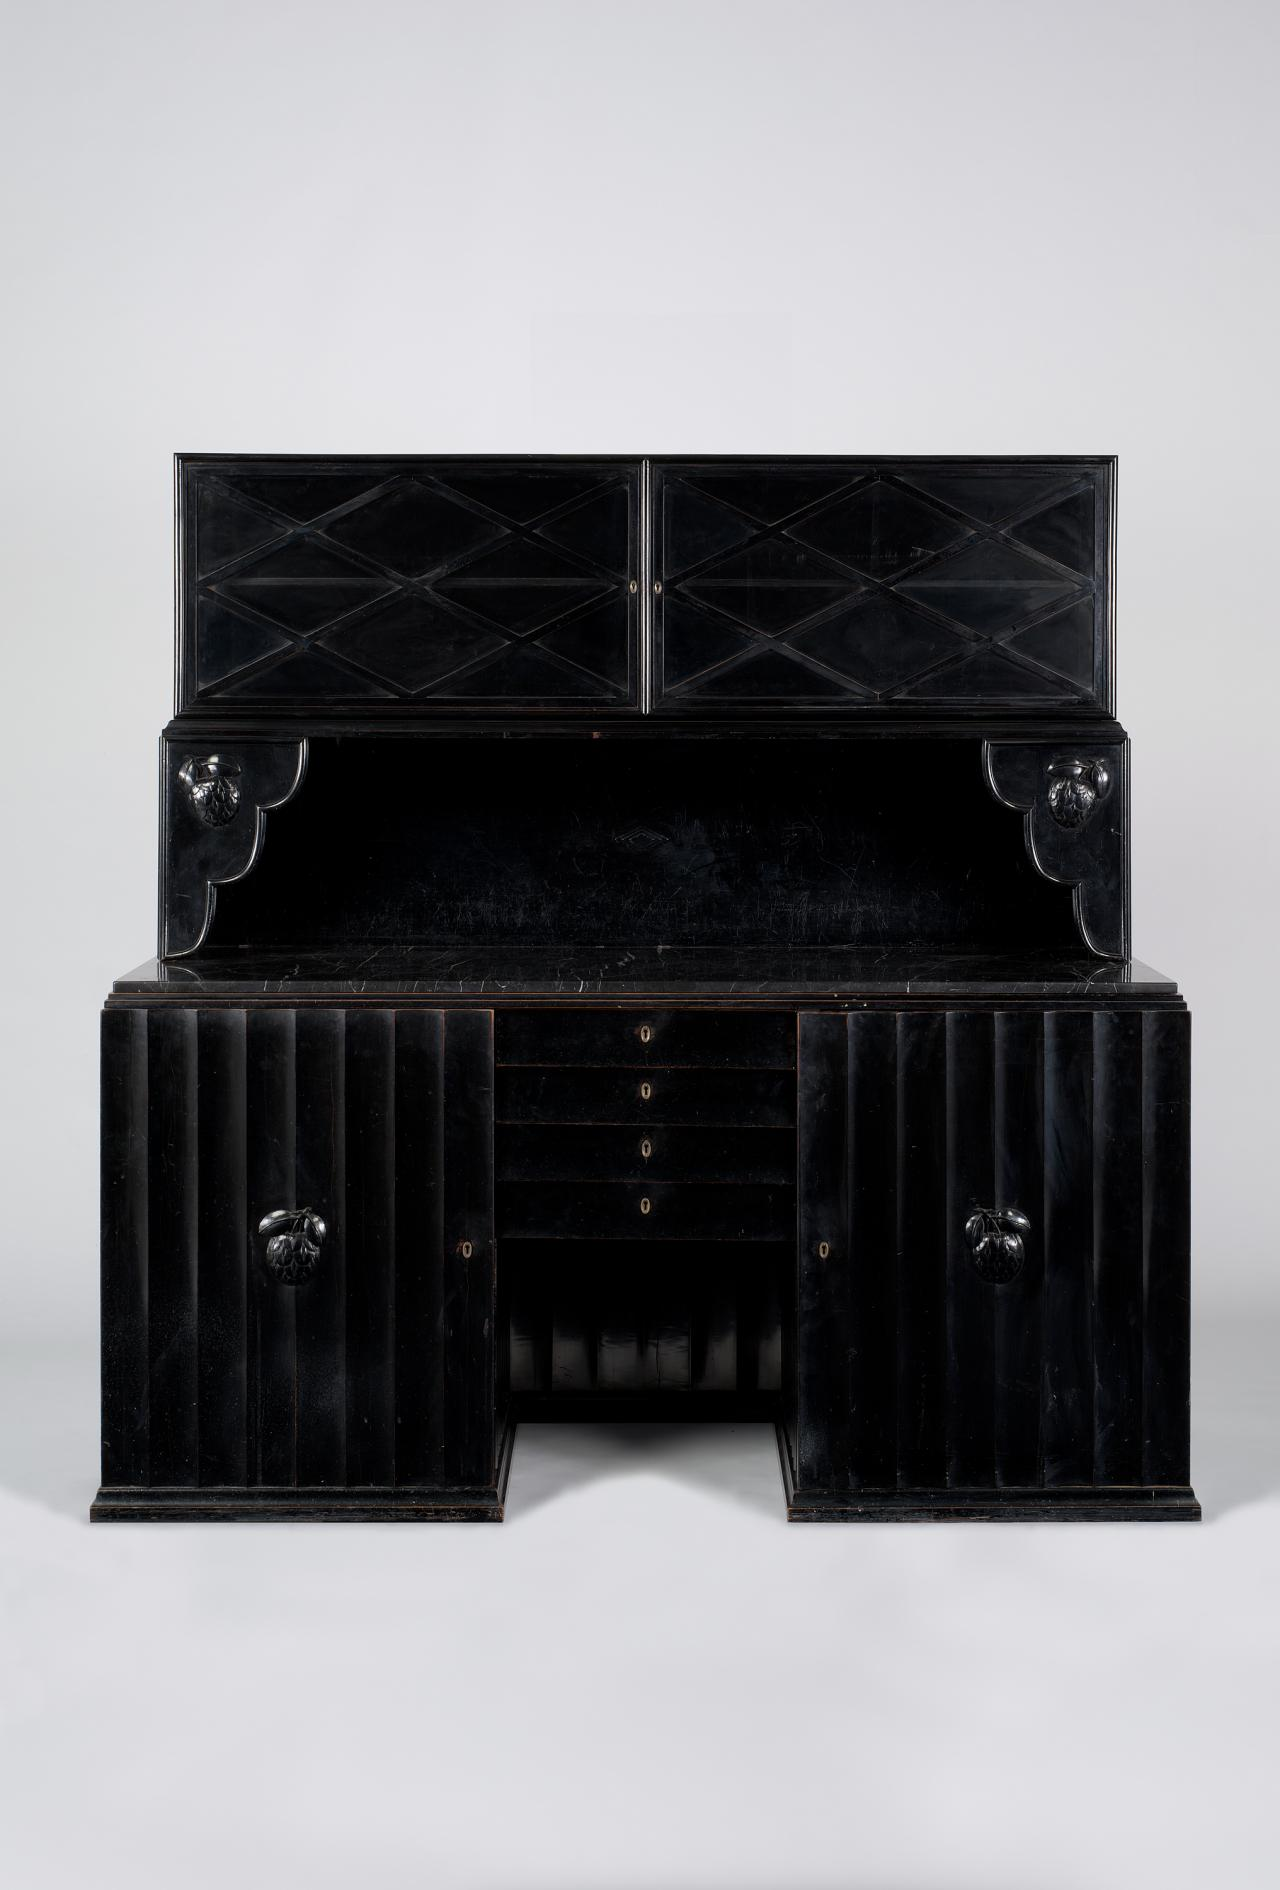 Sideboard, from the Gallia apartment hall